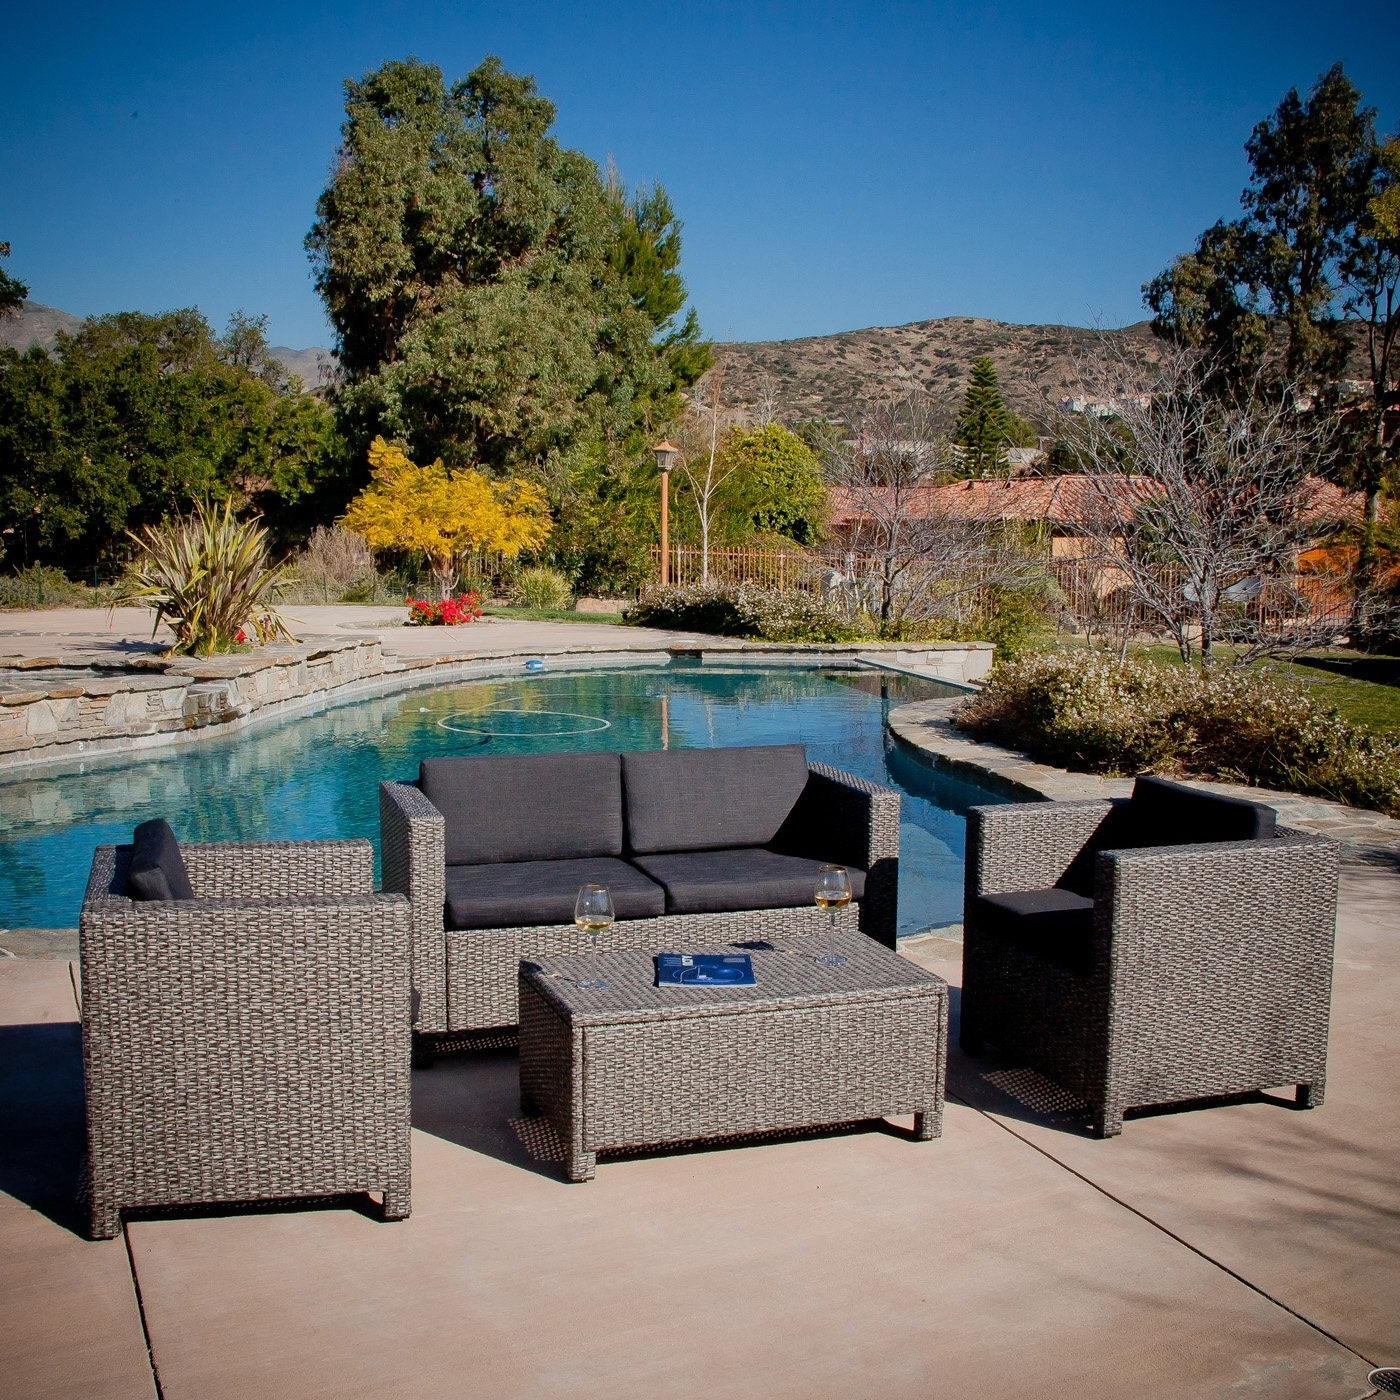 Best Selling Home Decor Puerta Grey Outdoor Wicker Sofa Set (View 17 of 20)